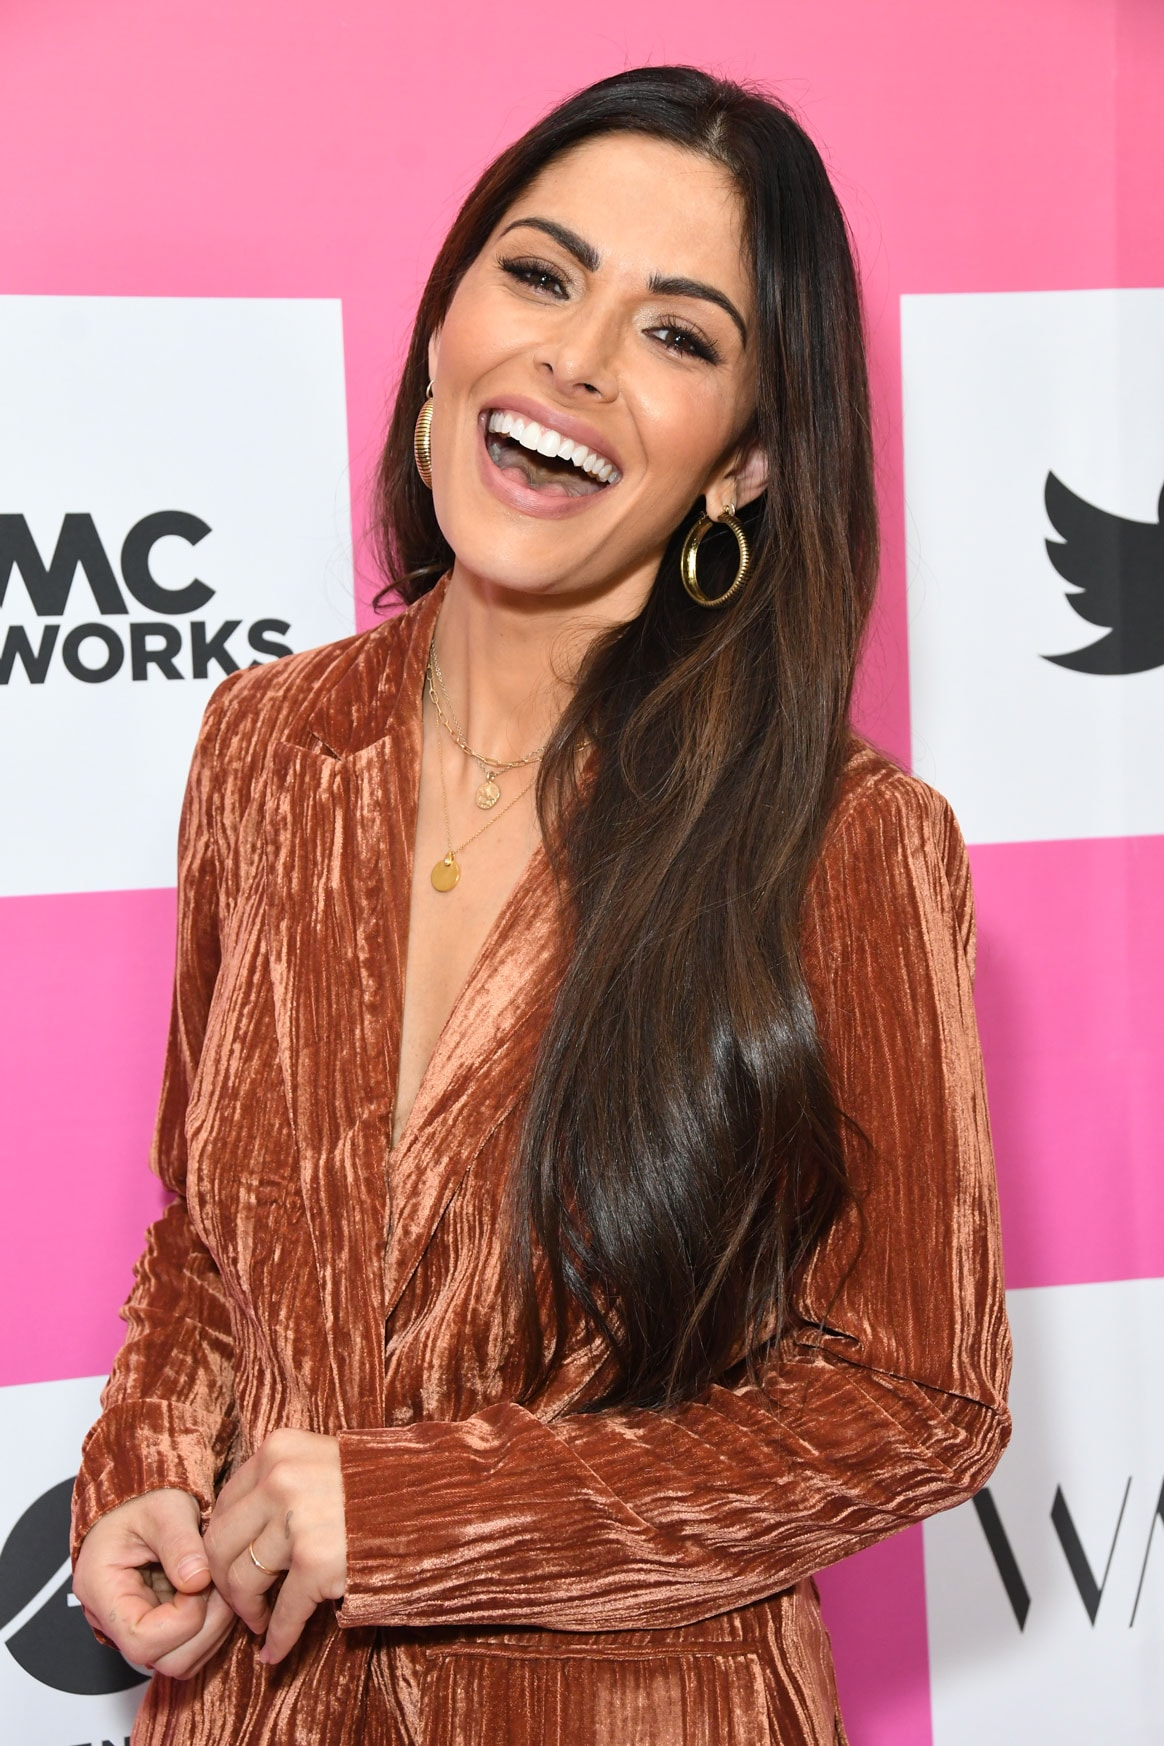 Sarah Shahi at the Power Women Summit 2019